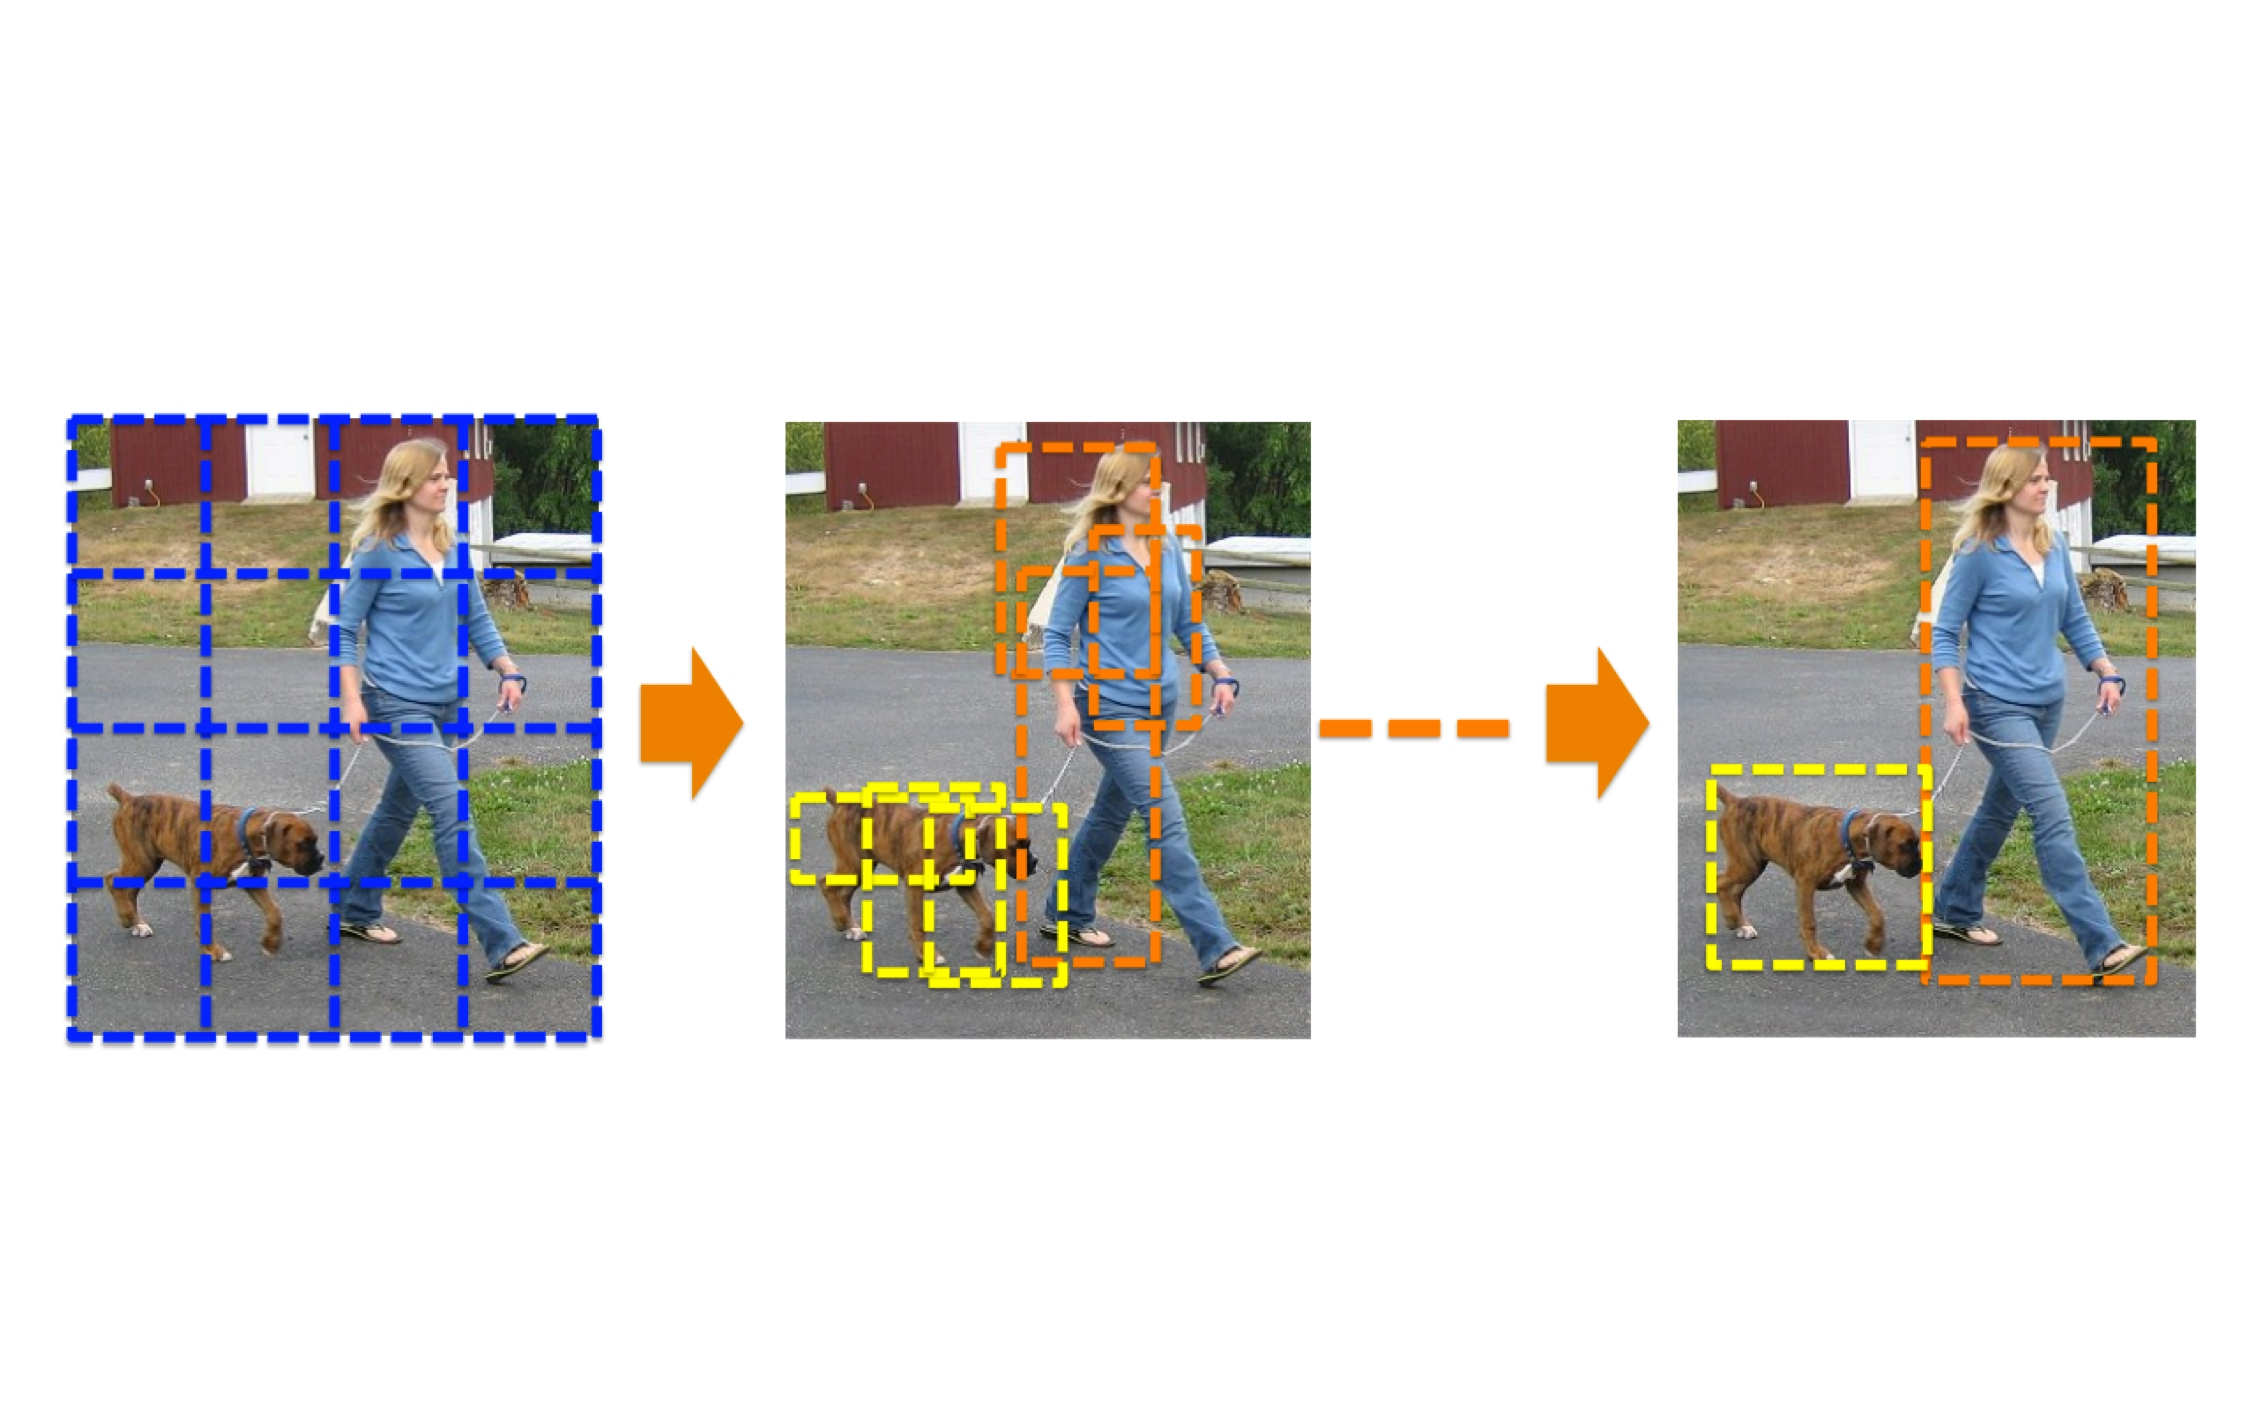 G-CNN: an Iterative Grid Based Object Detector